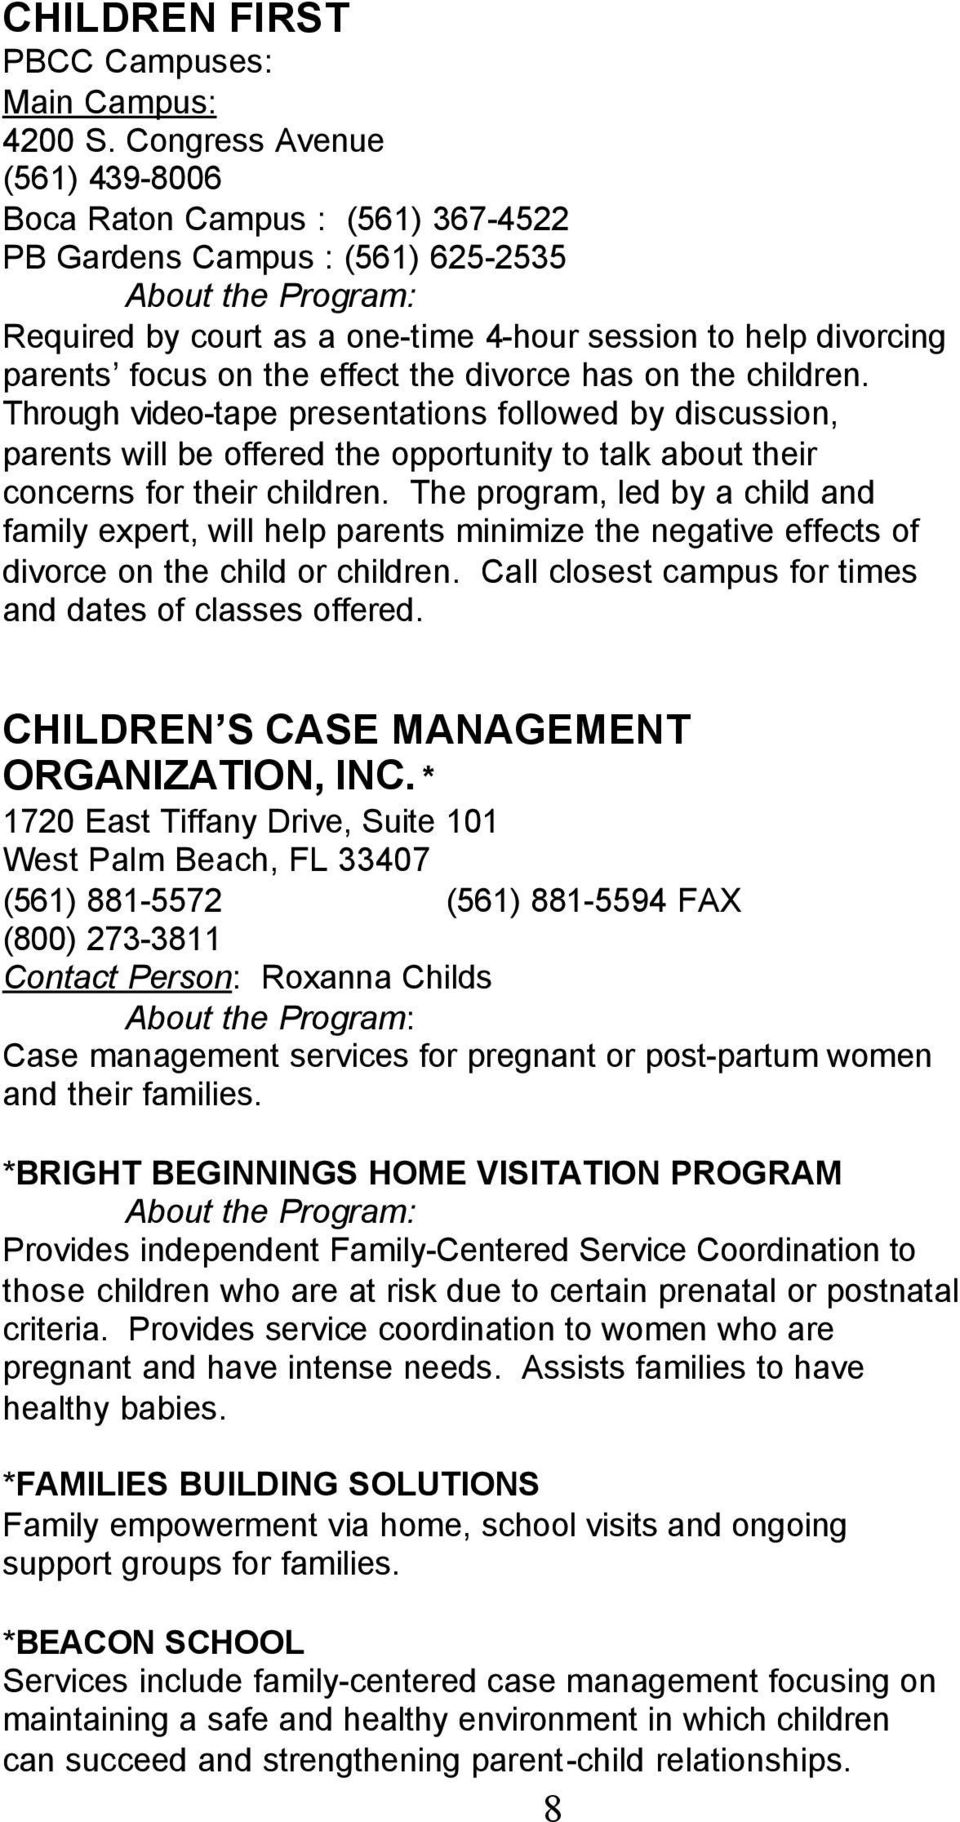 divorce has on the children. Through video-tape presentations followed by discussion, parents will be offered the opportunity to talk about their concerns for their children.